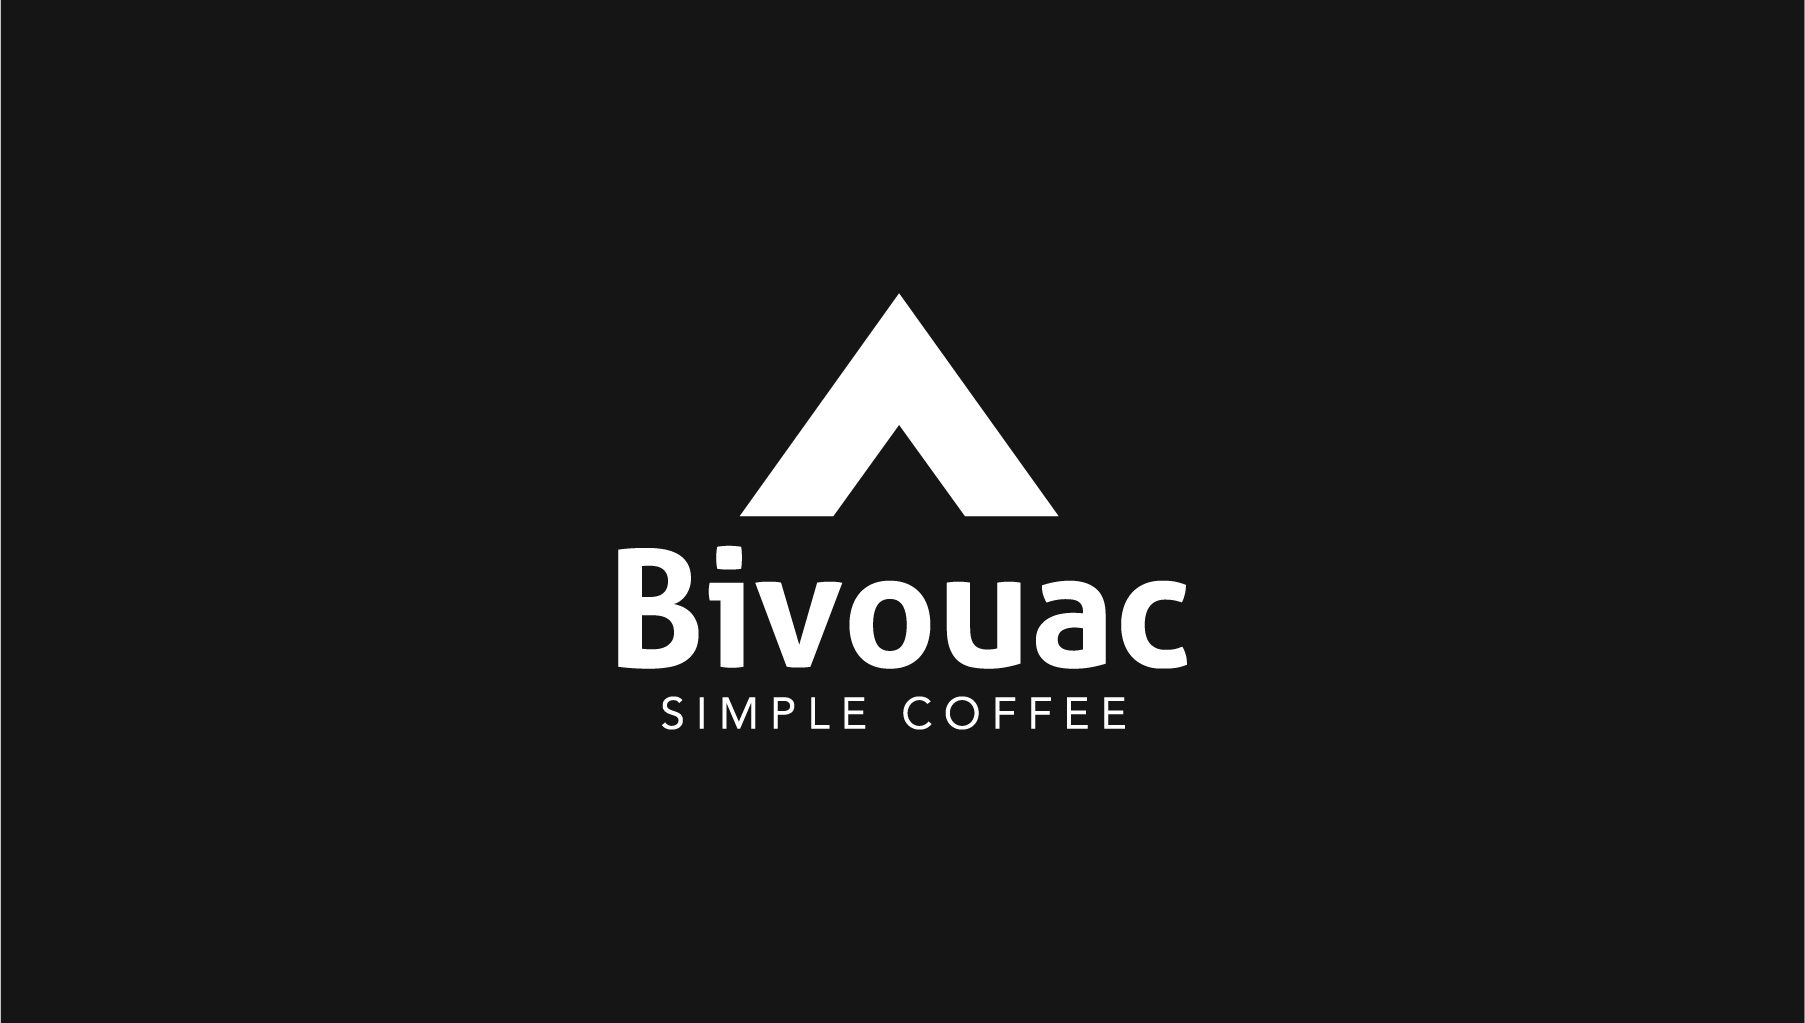 bivouac_primary_logo.png